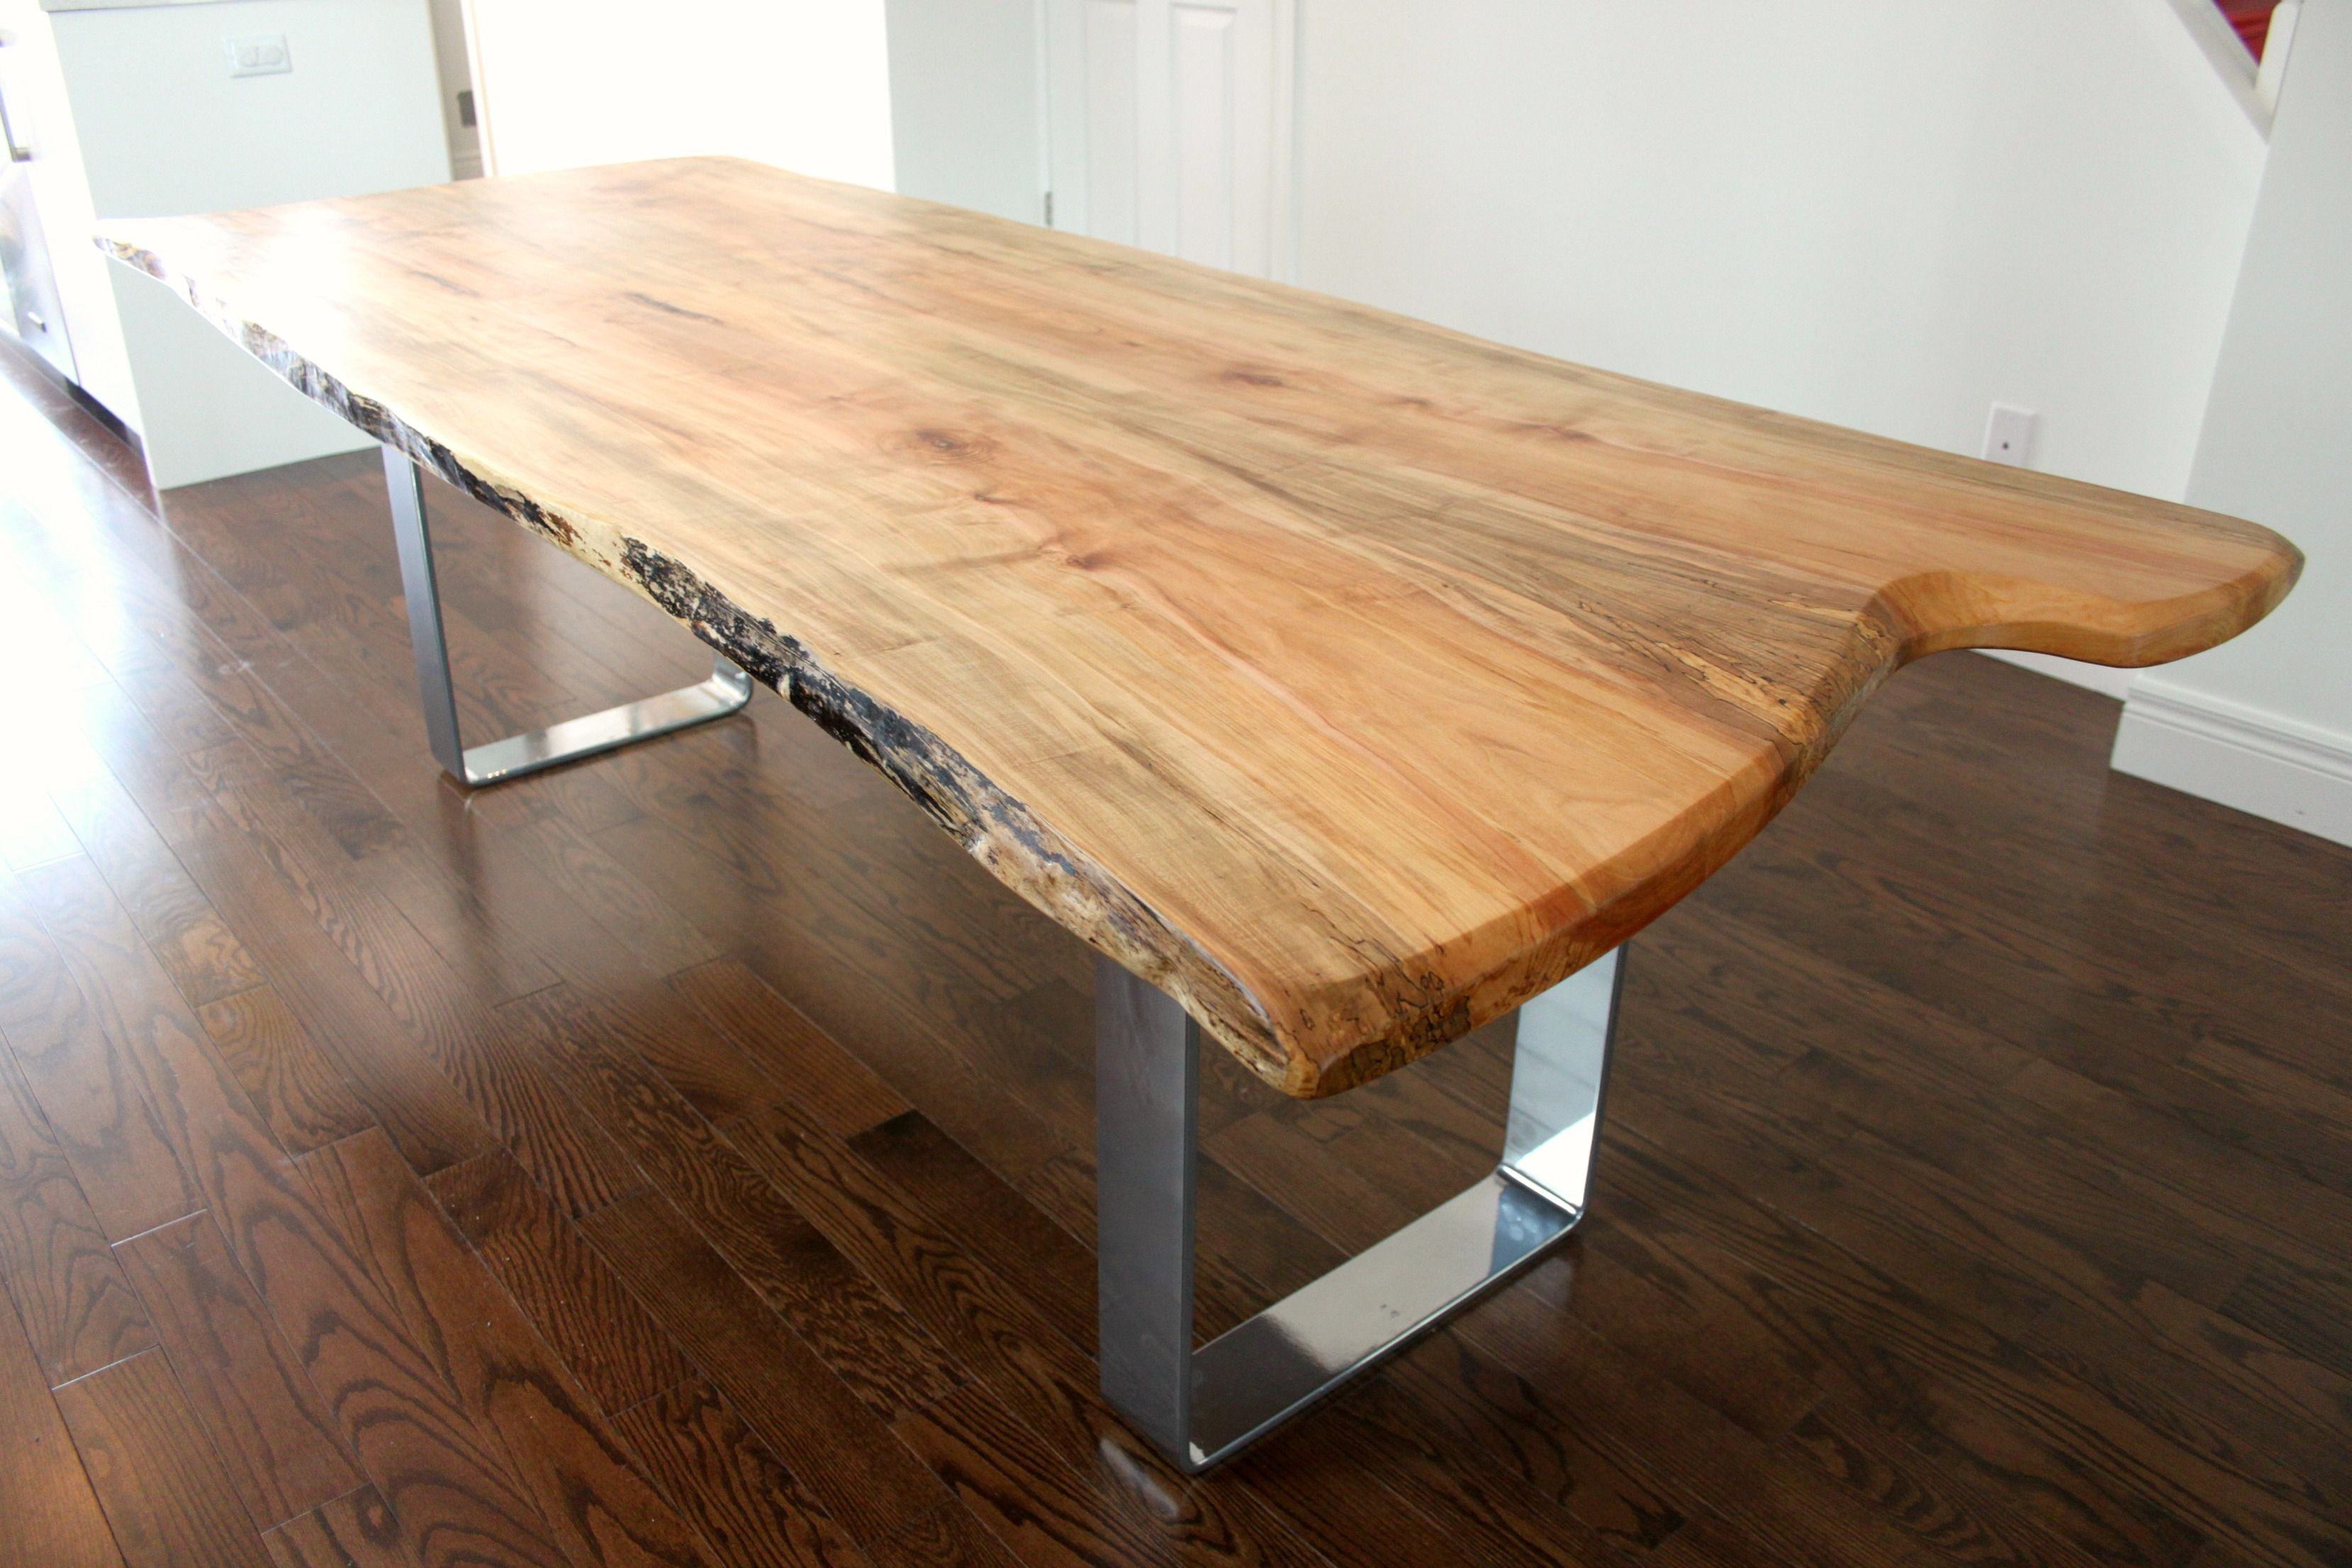 Live Edge Table HOME STYLE Pinterest Live edge wood  : db6e834dbaac9e04899db94dc0eb8780 from www.pinterest.com size 3318 x 2212 jpeg 1341kB